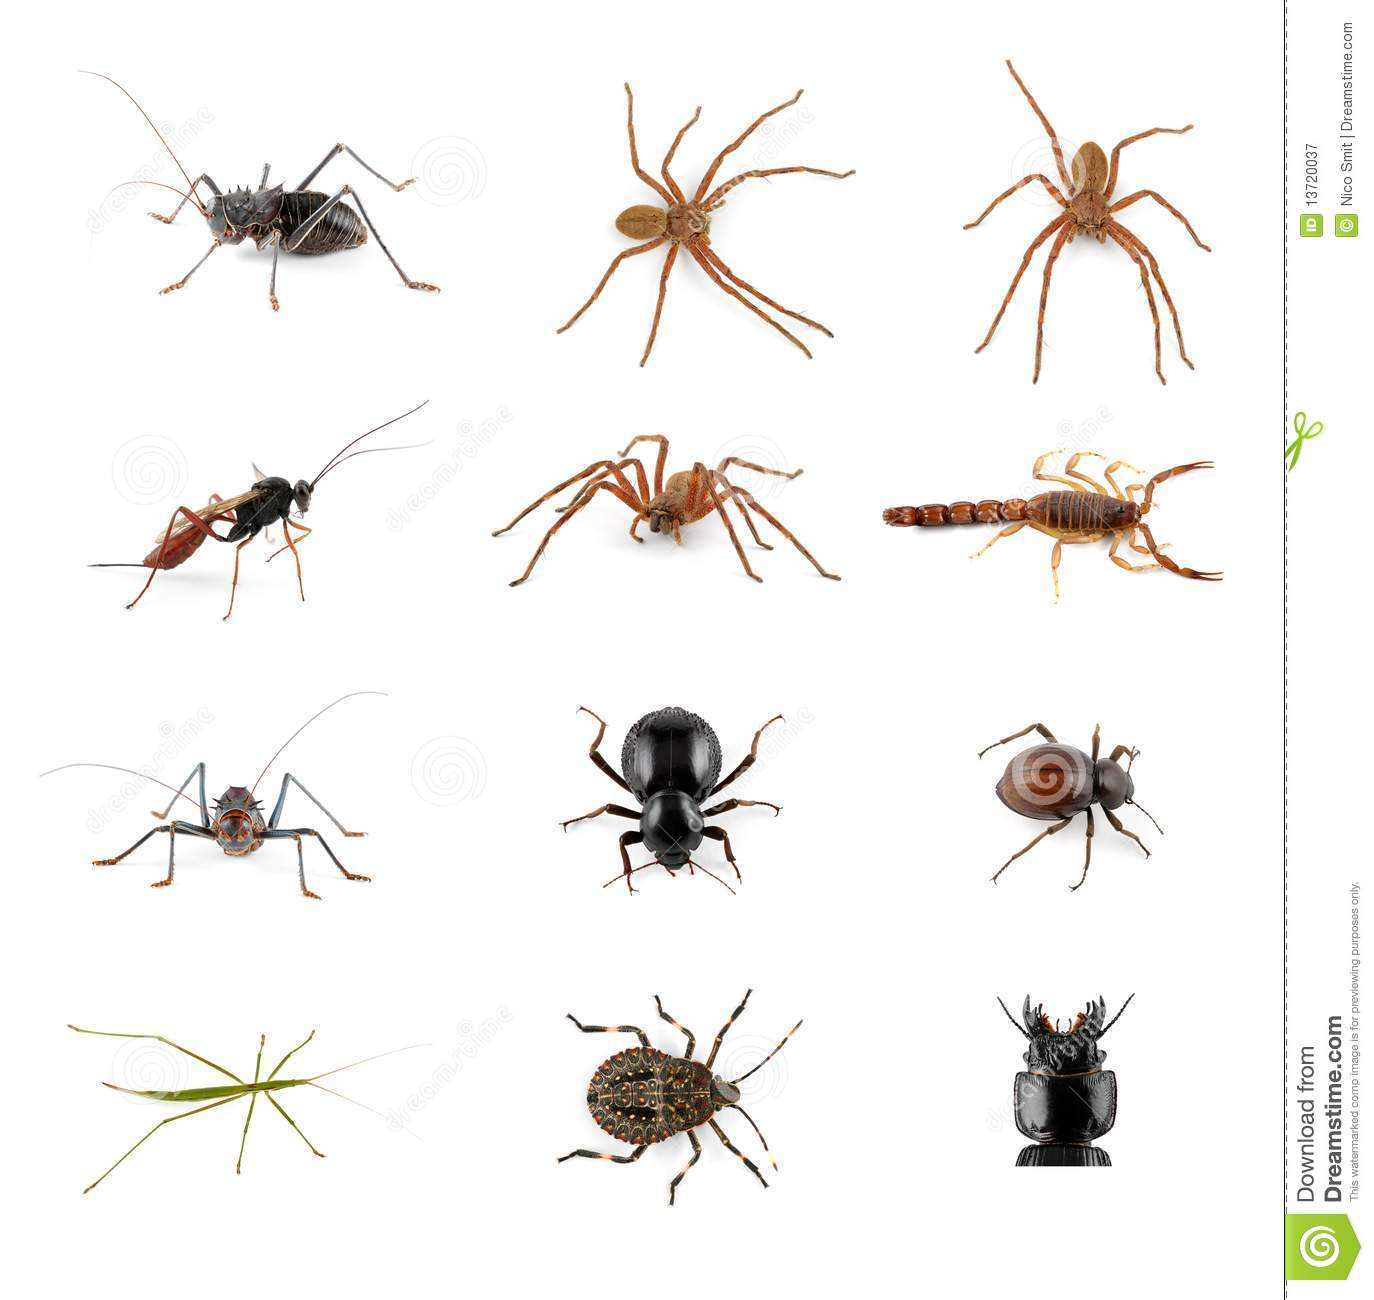 Insects, spiders and scorpion